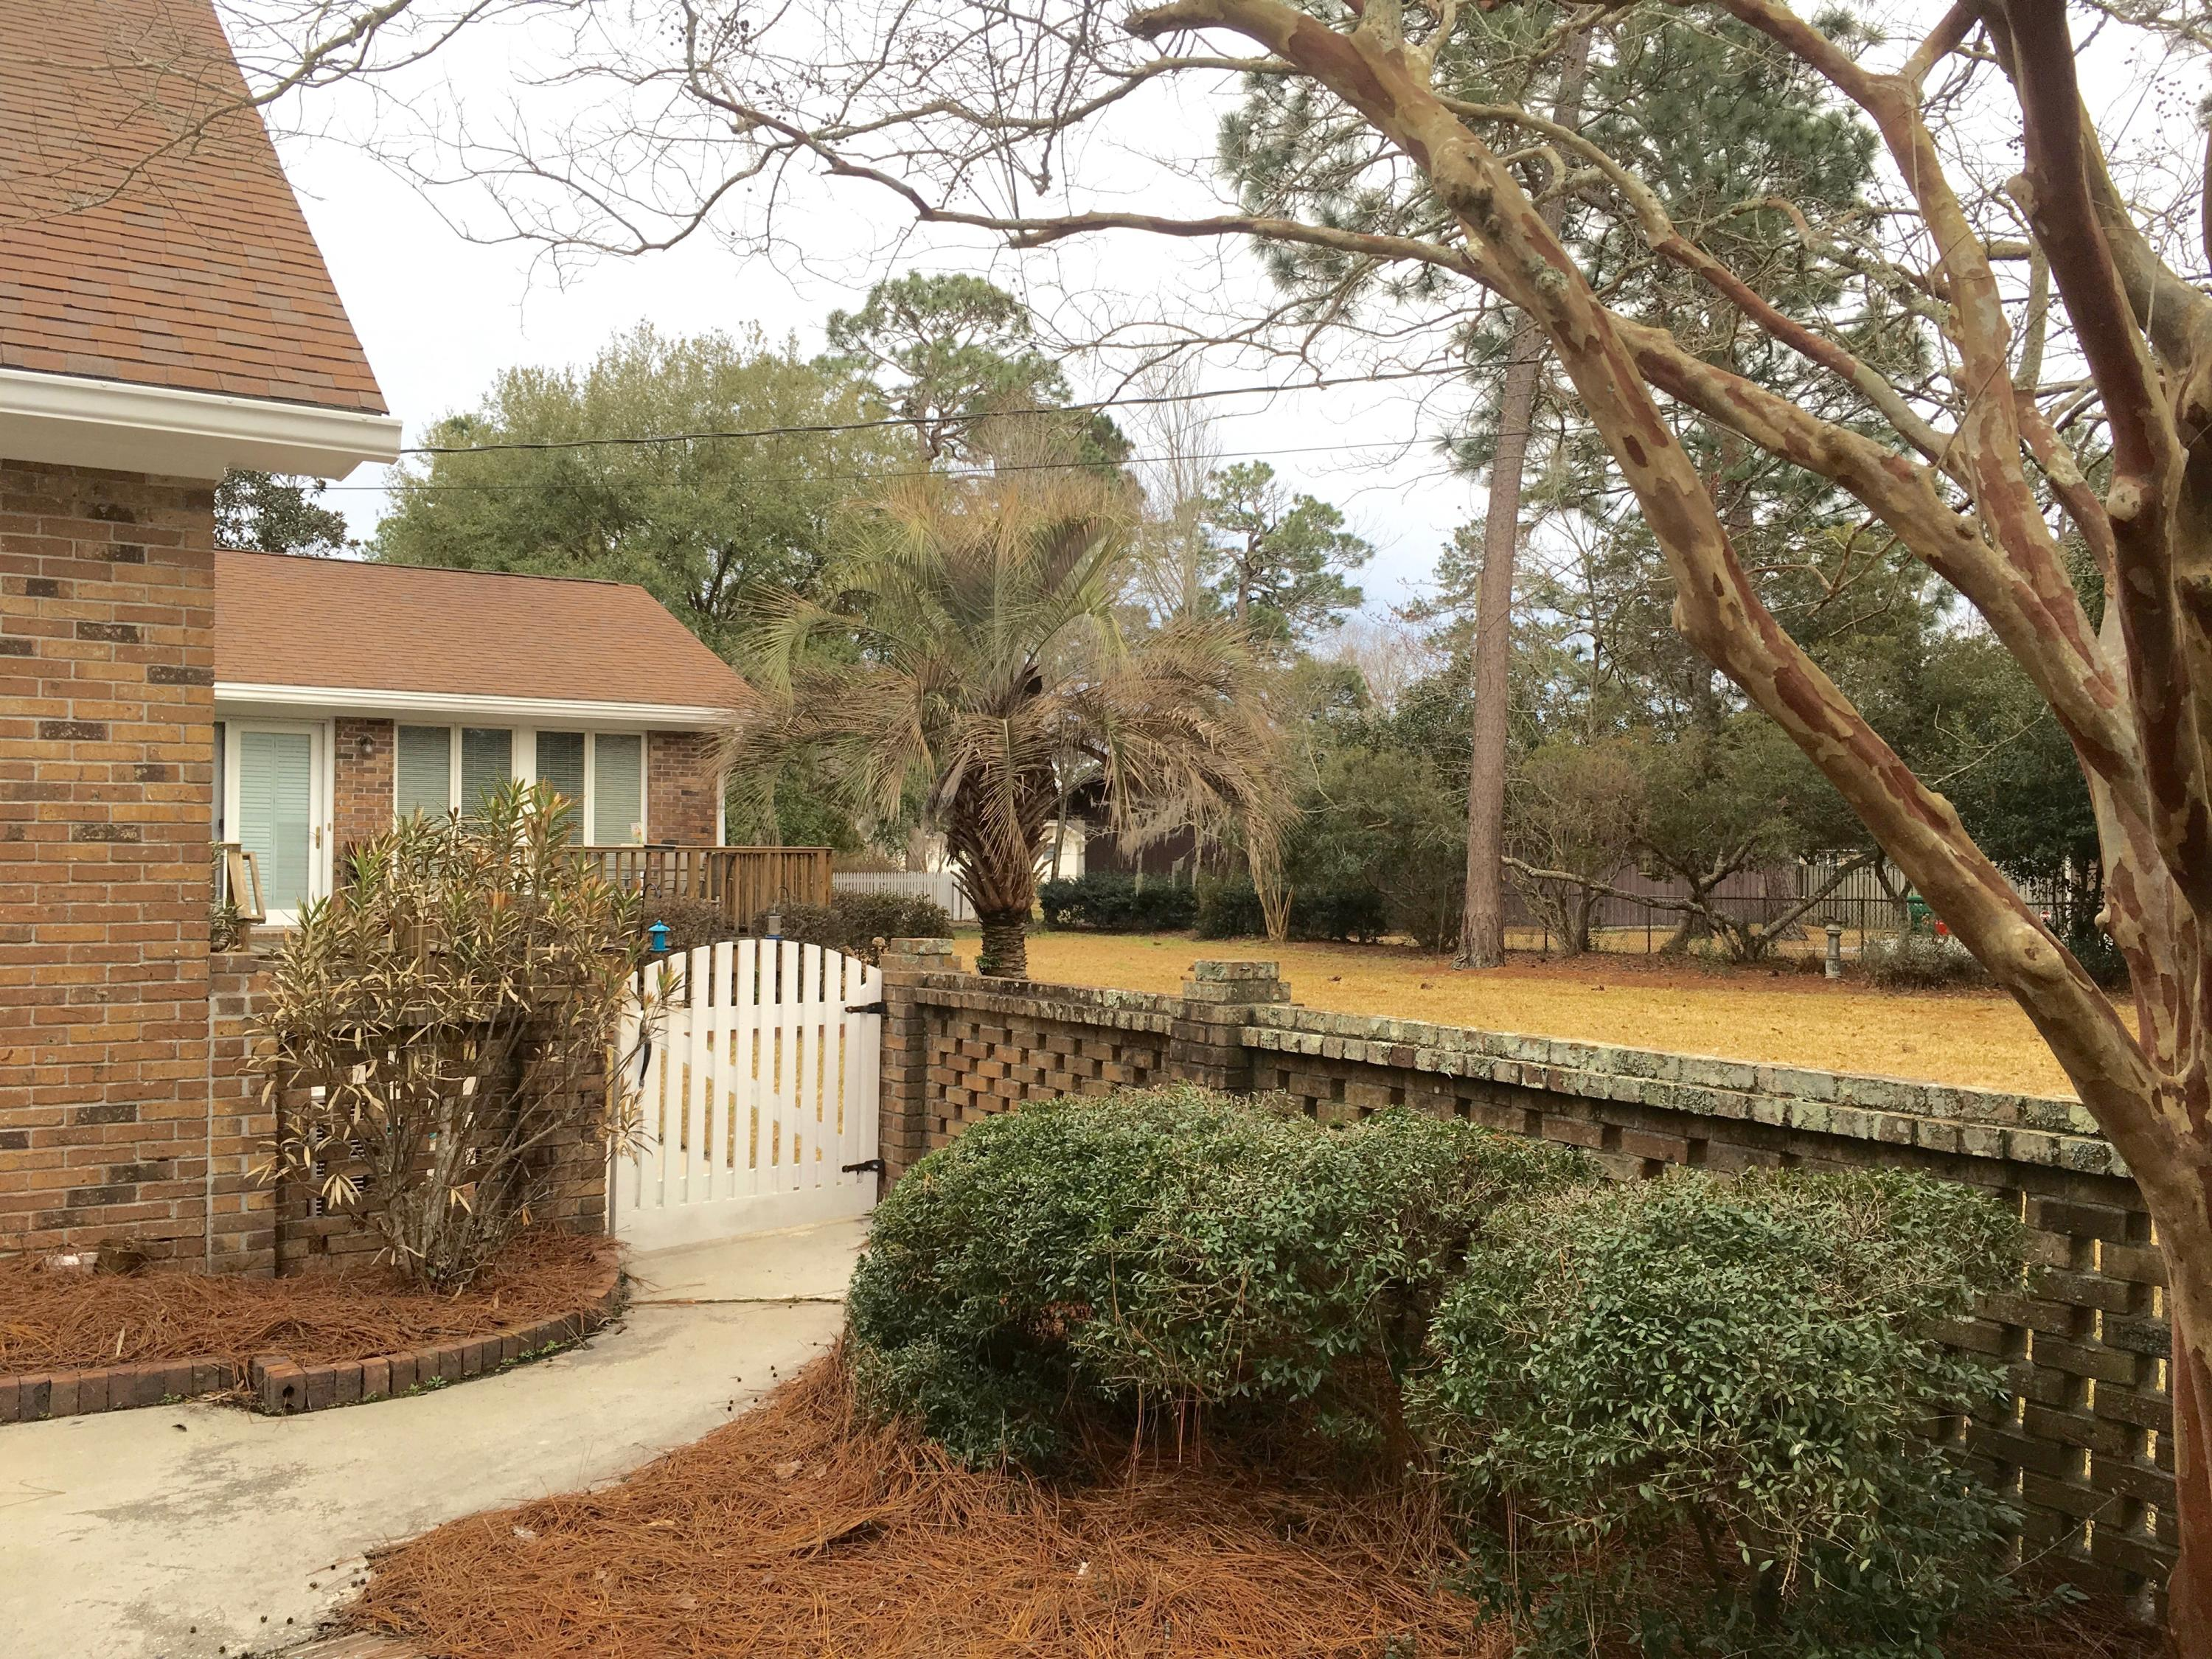 Photo of 504 W 5th N St, Summerville, SC 29483